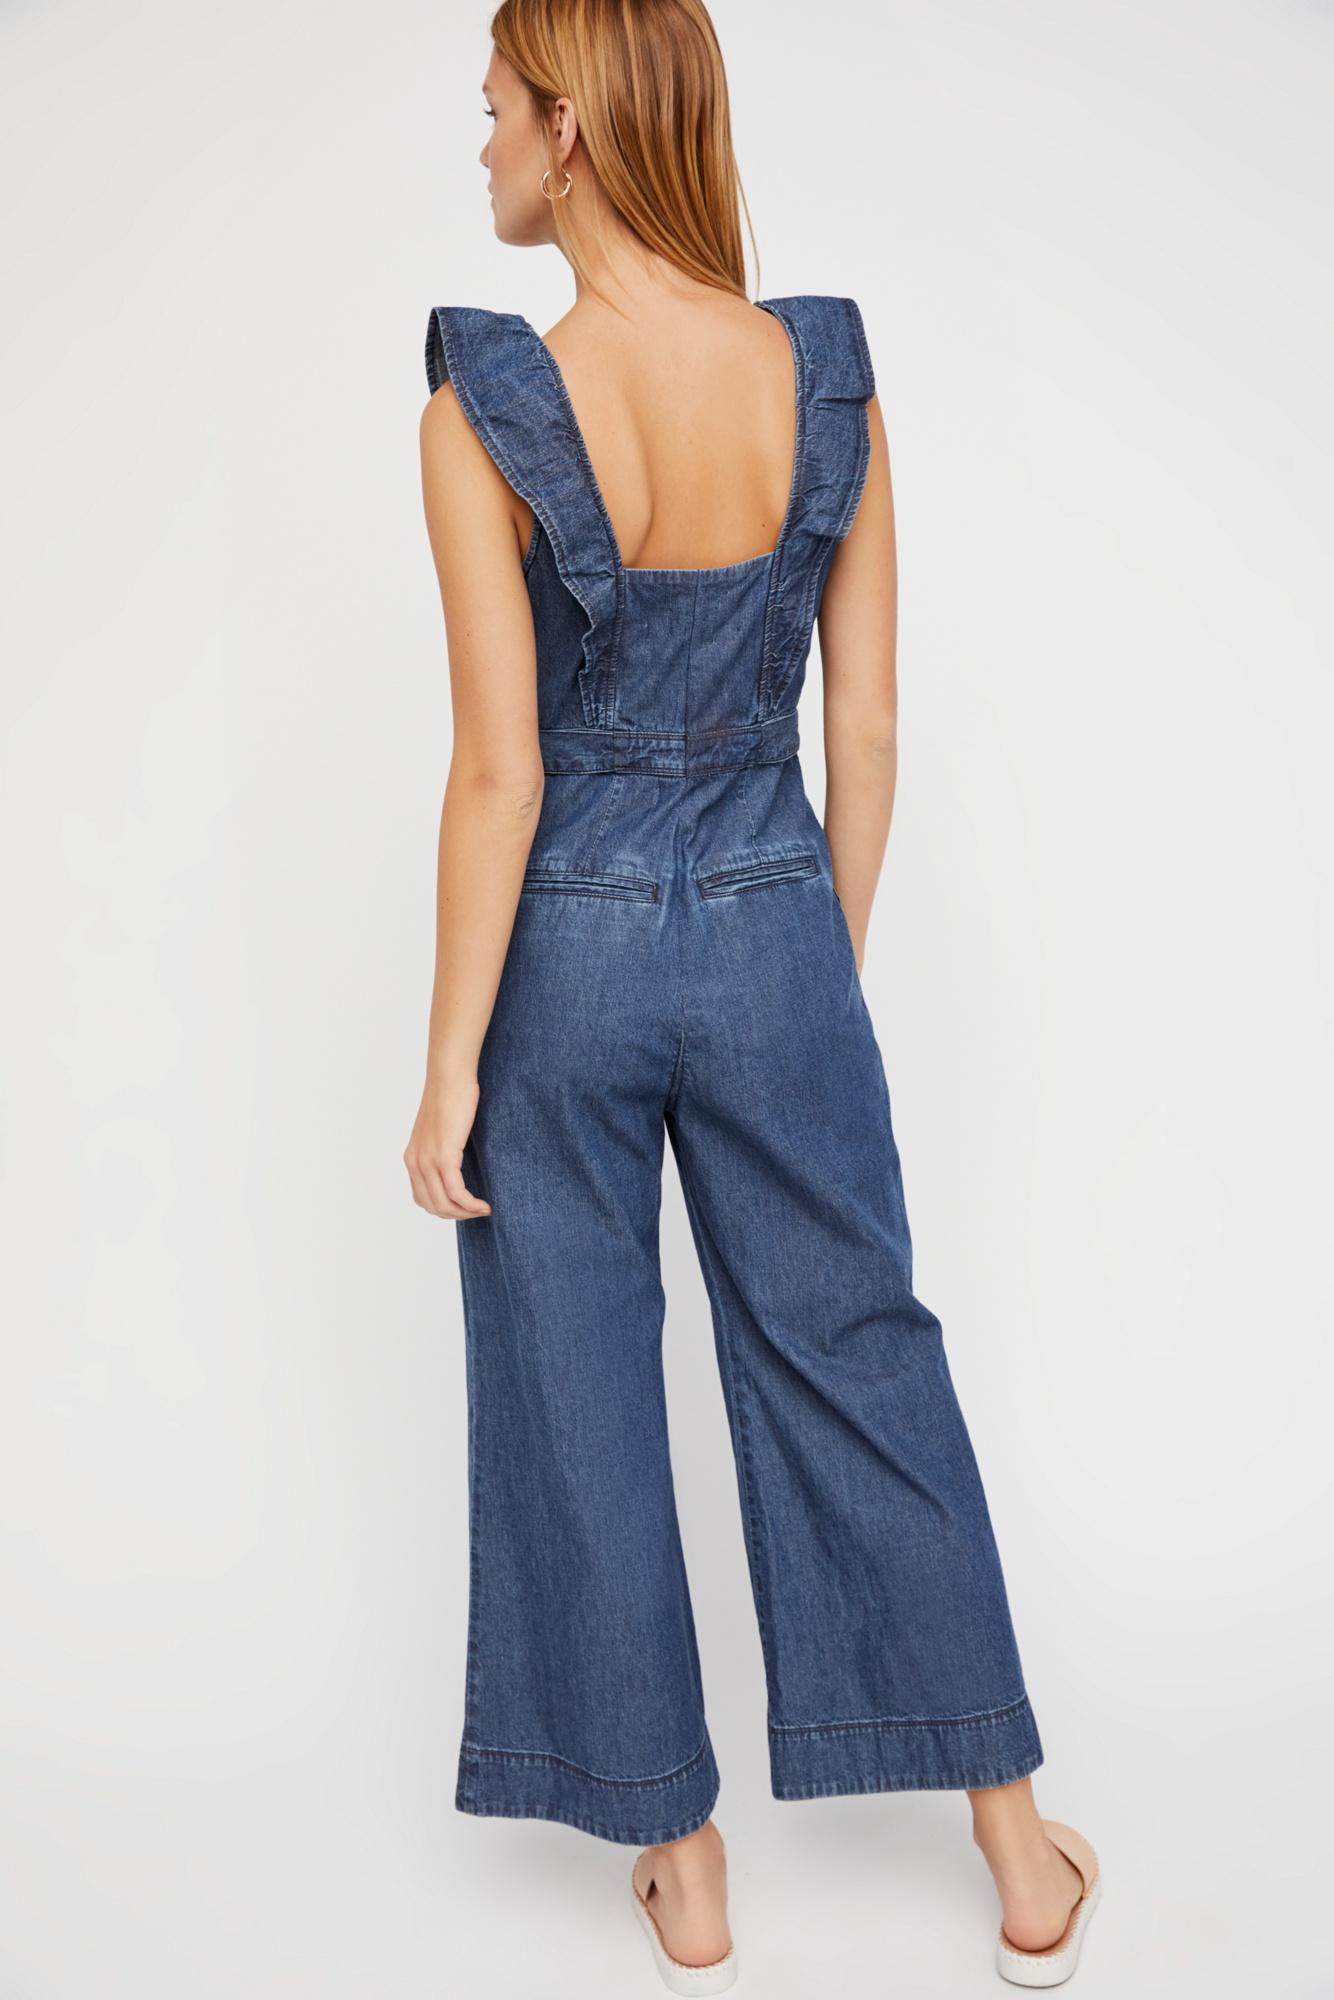 e70087fe0e80 Free People Sun Valley Jumpsuit By We The Free in Blue - Lyst